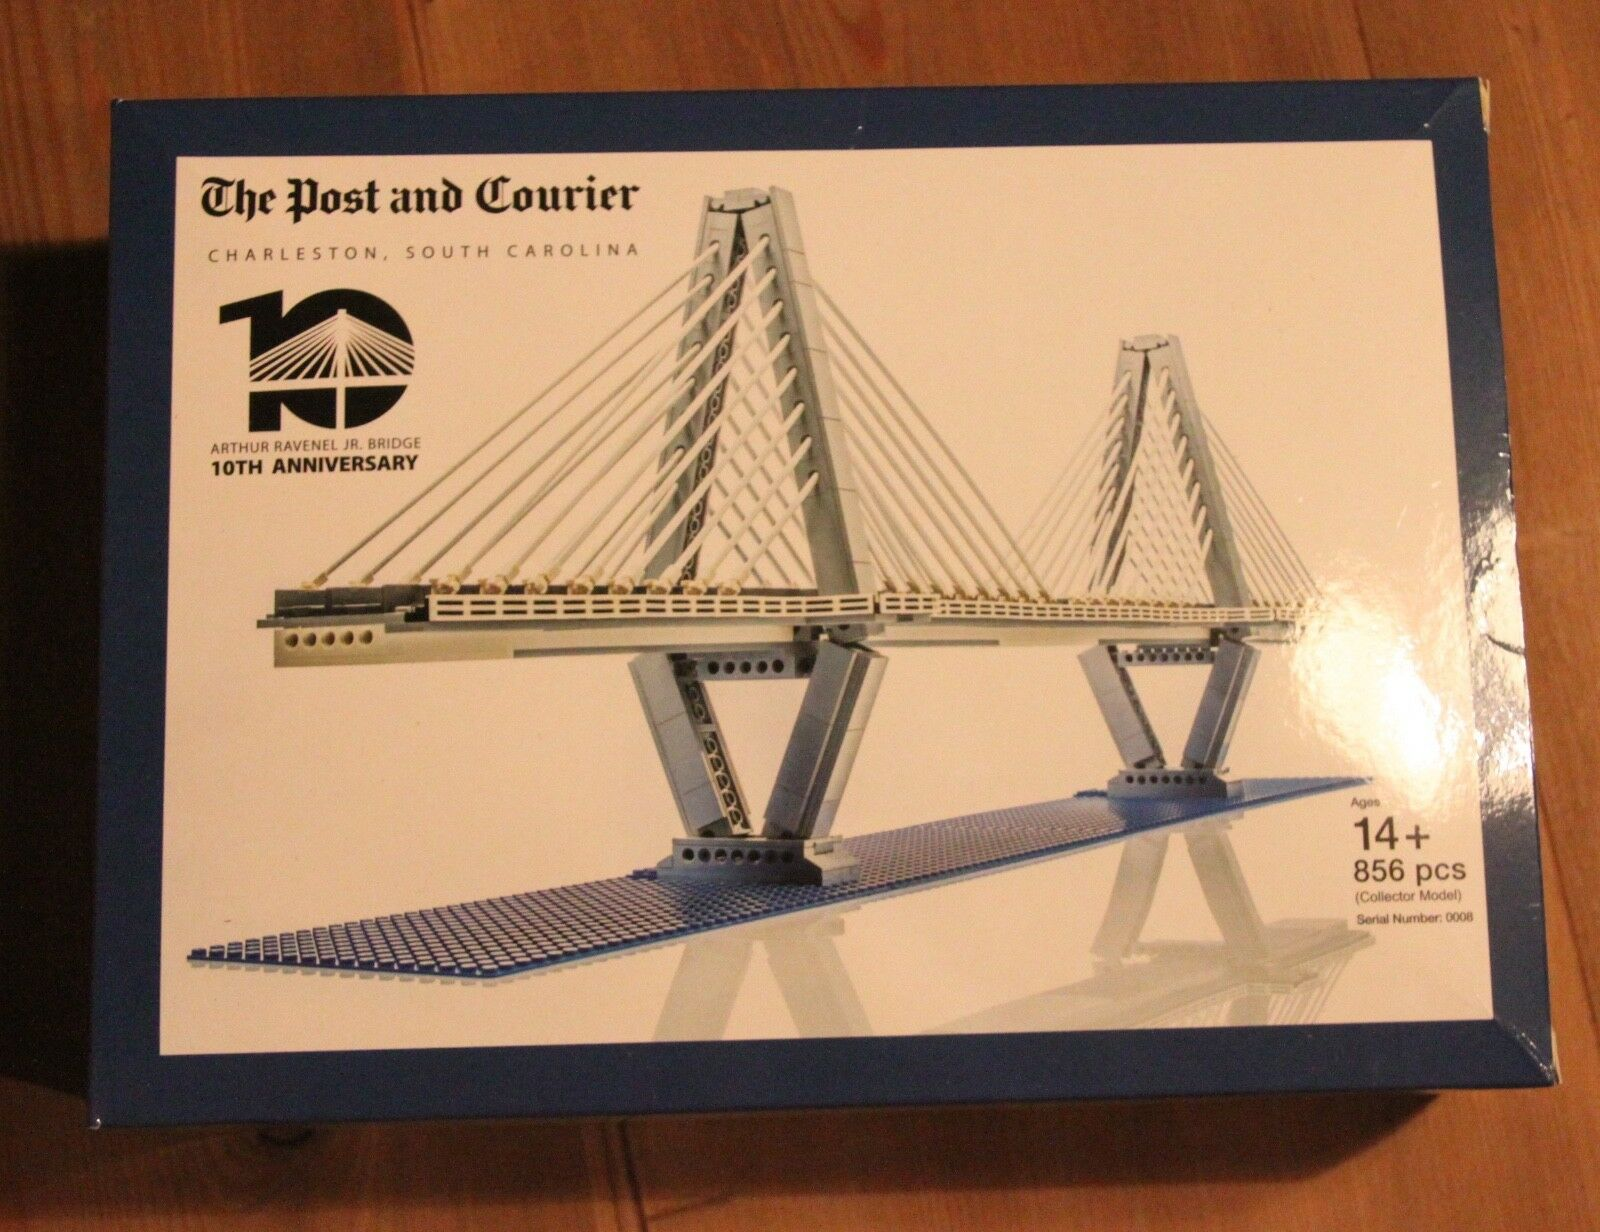 Lego Arthur Ravenel Jr. Bridge Certified Professional Limited Edition